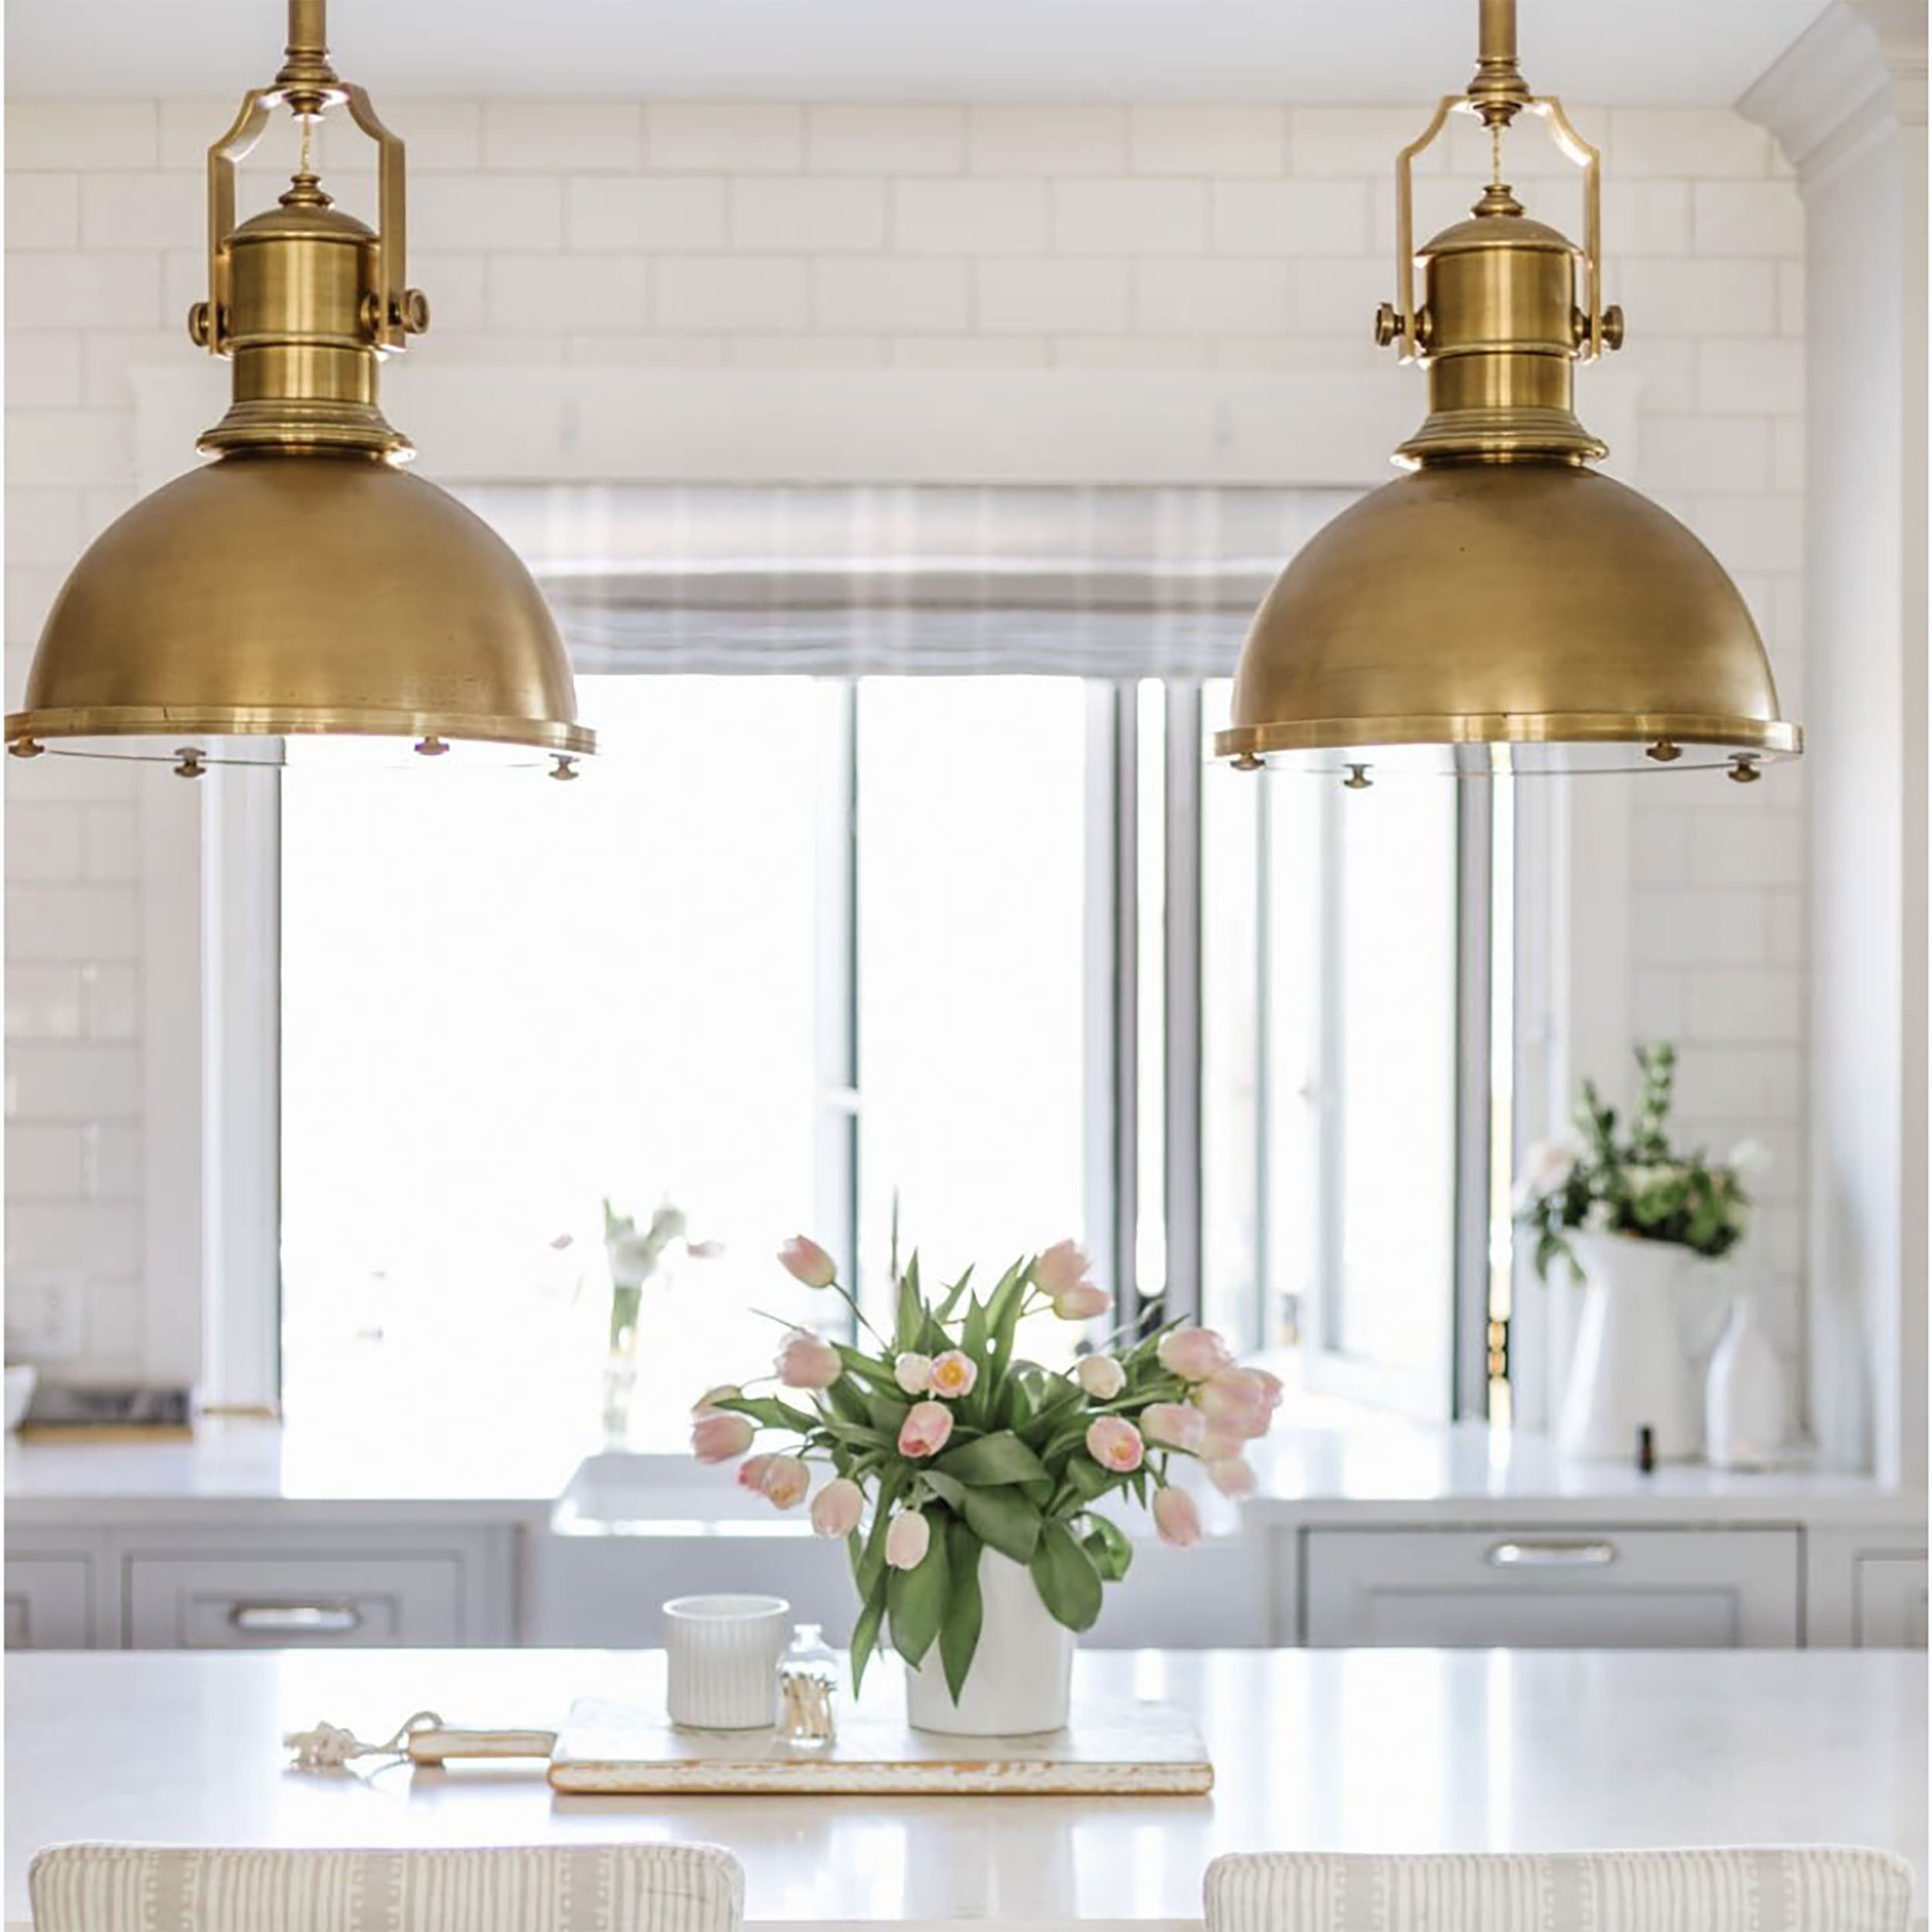 In My Home: Lighting I Love With Carmen 6 Light Kitchen Island Linear Pendants (View 20 of 30)